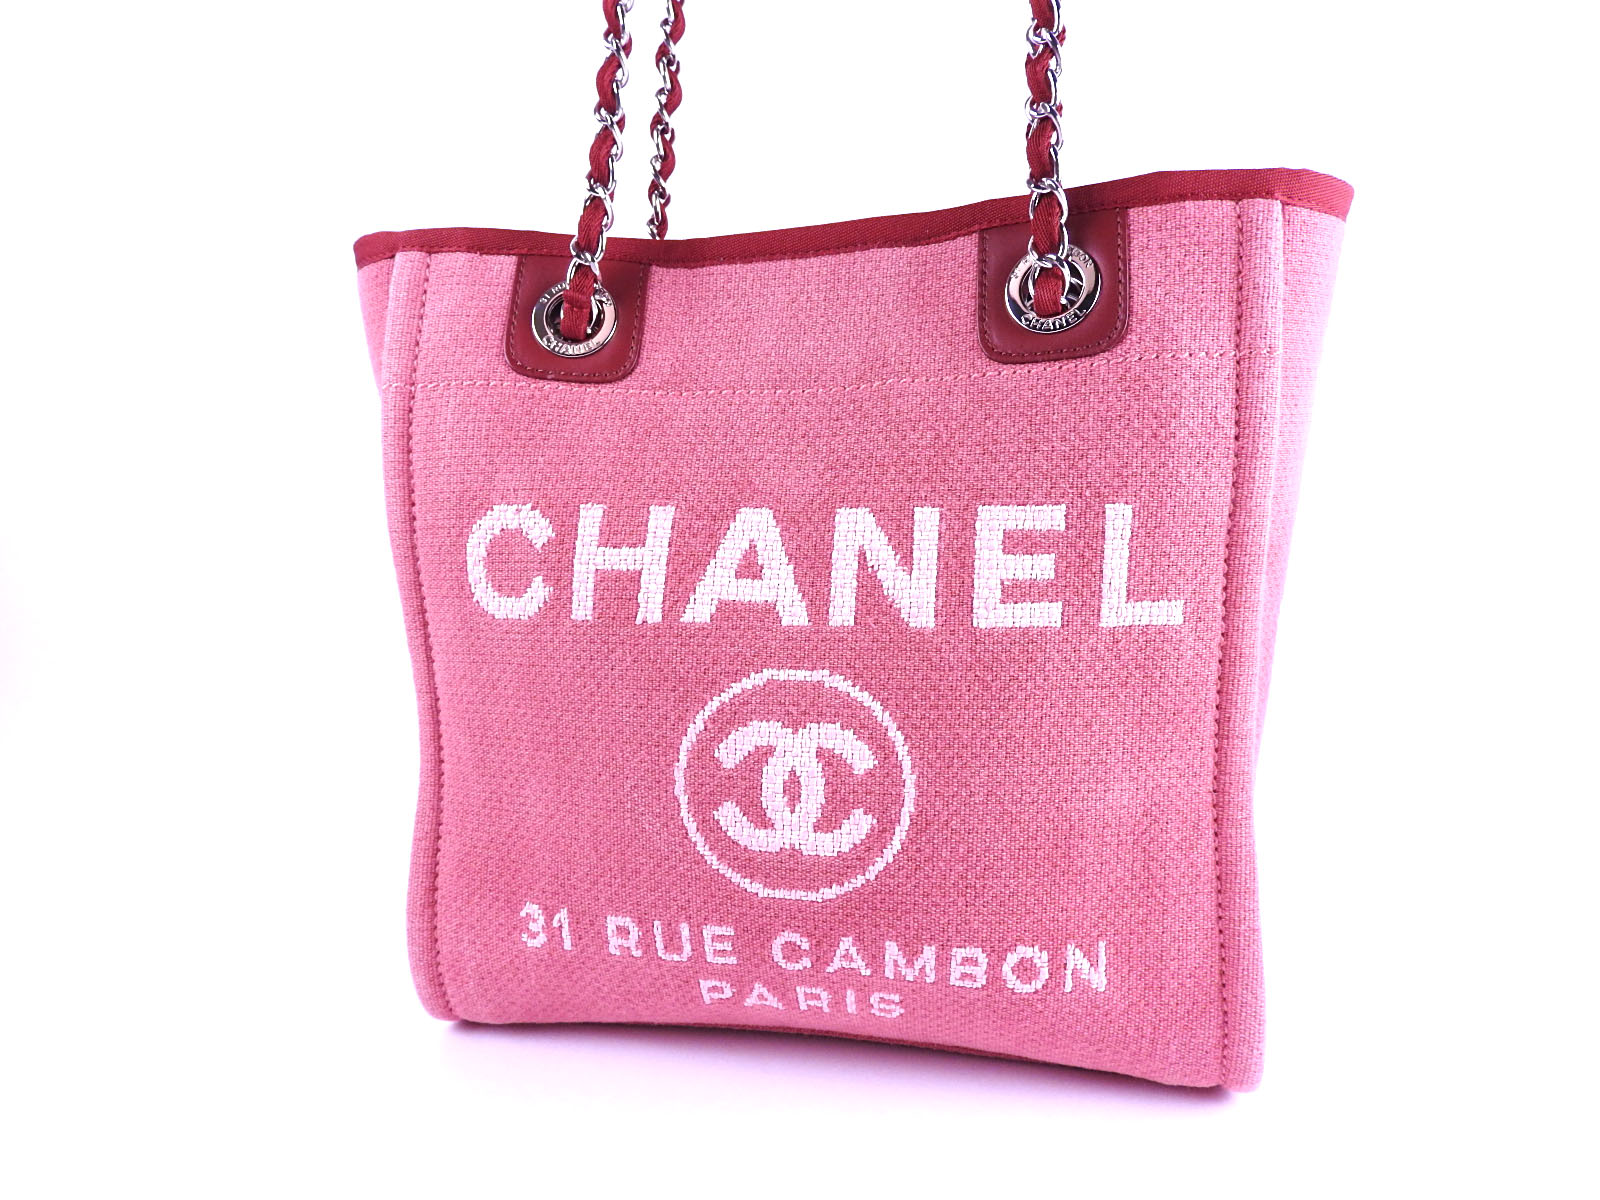 5926f7b9b0f6 Auth CHANEL Deauville PM Chain Shoulder Tote Bag Canvas Red Silver ...